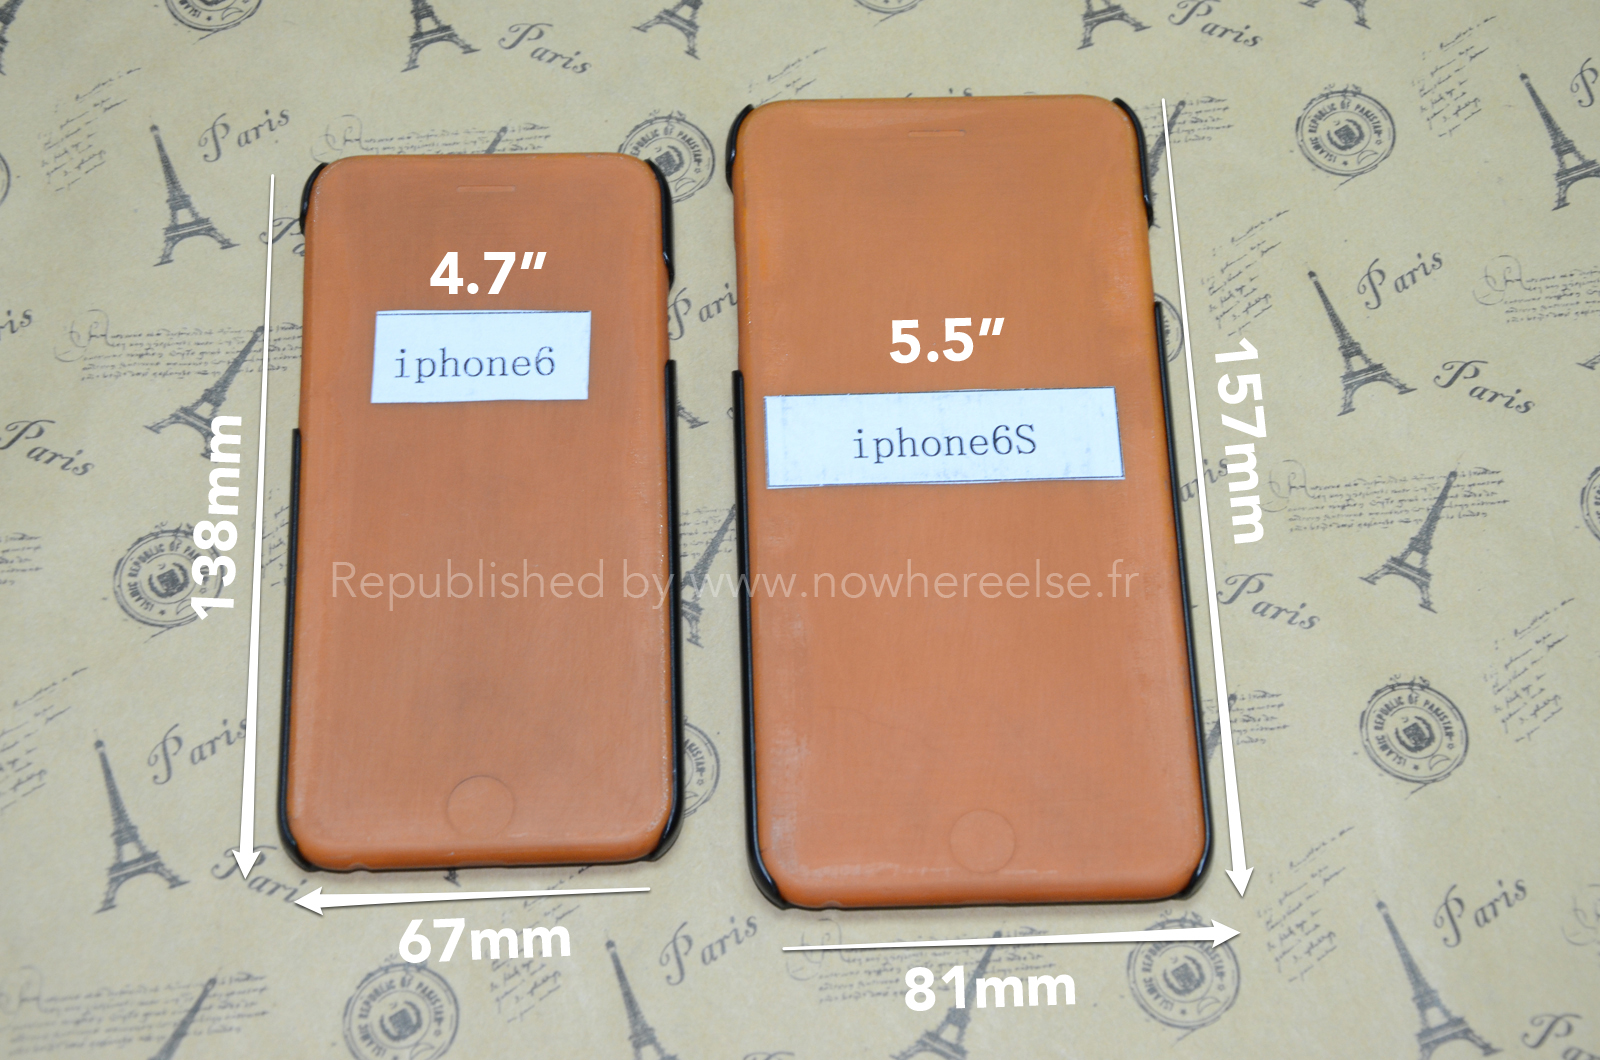 New leak might show us the 5.5-inch iPhone 6's exact dimensions